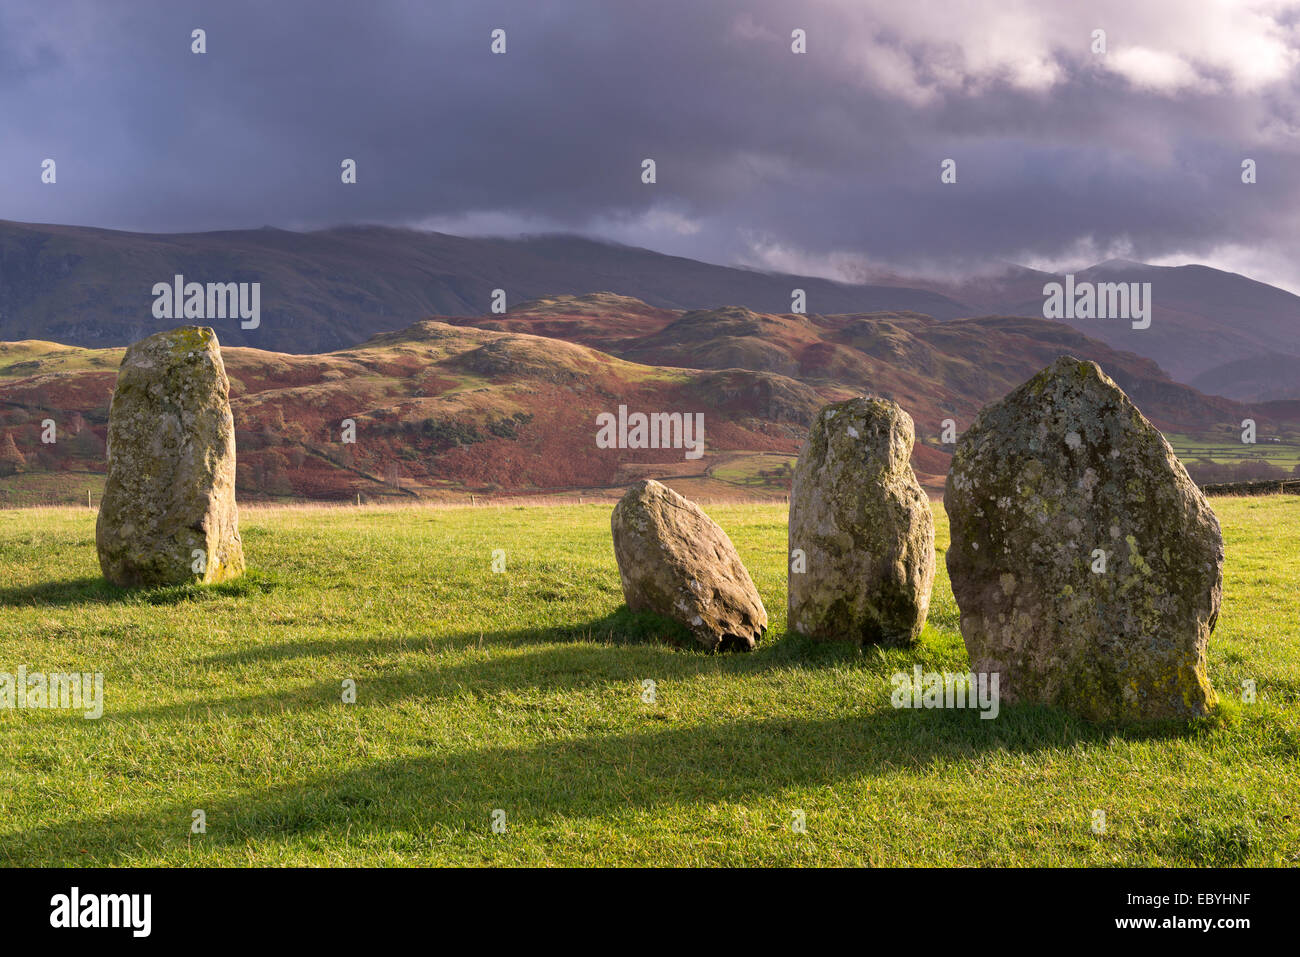 Megalithic standing stones forming part of Castlerigg Stone Circle, Lake District, Cumbria, England. Autumn (November) Stock Photo